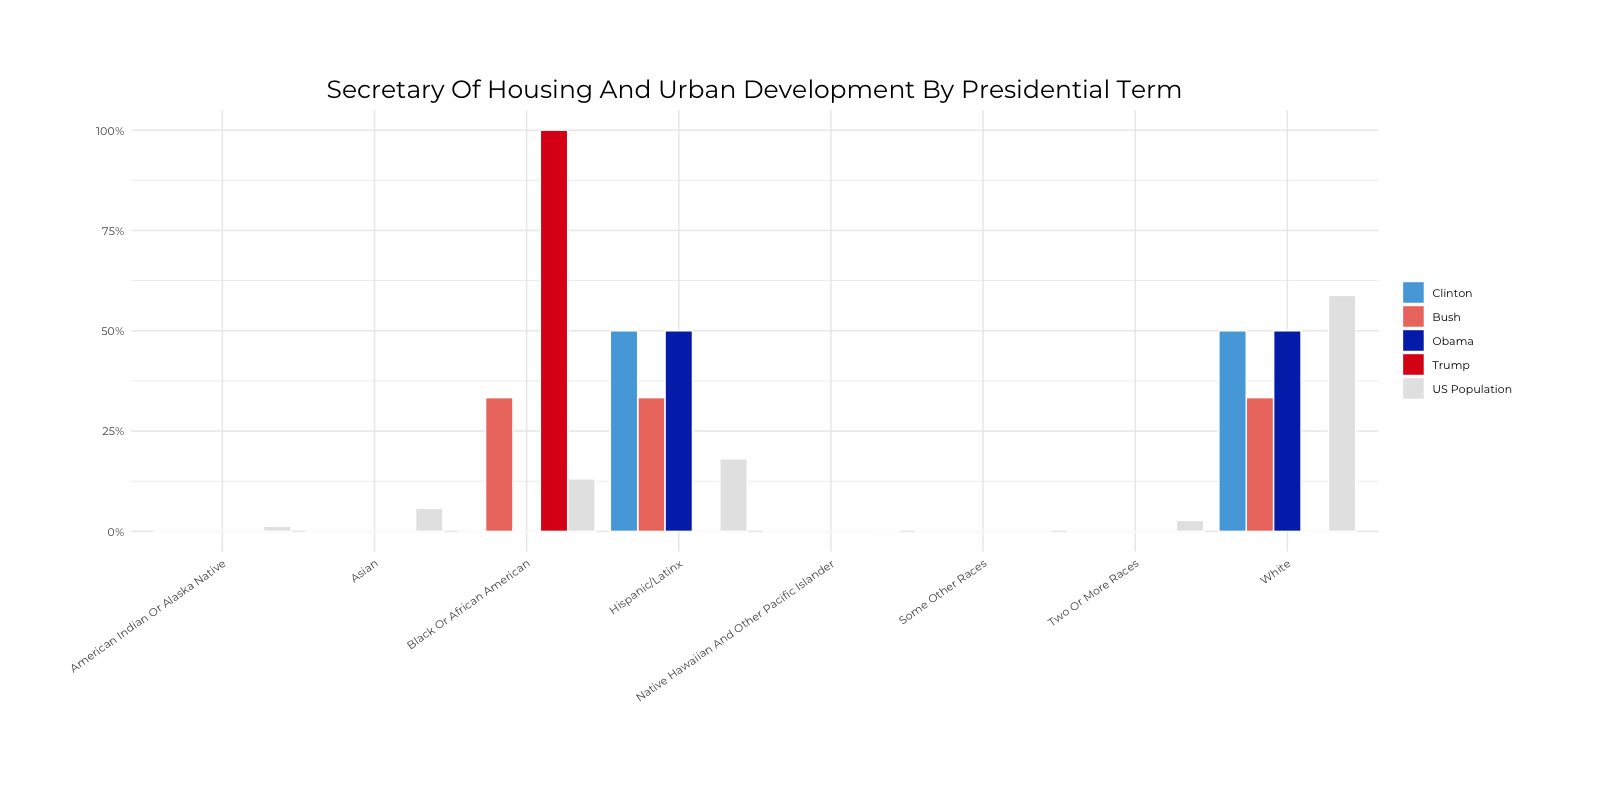 Graph about Racial Composition Comparison of Secretary of Housing and Urban Development by Presidential Terms. More detailed text description below.